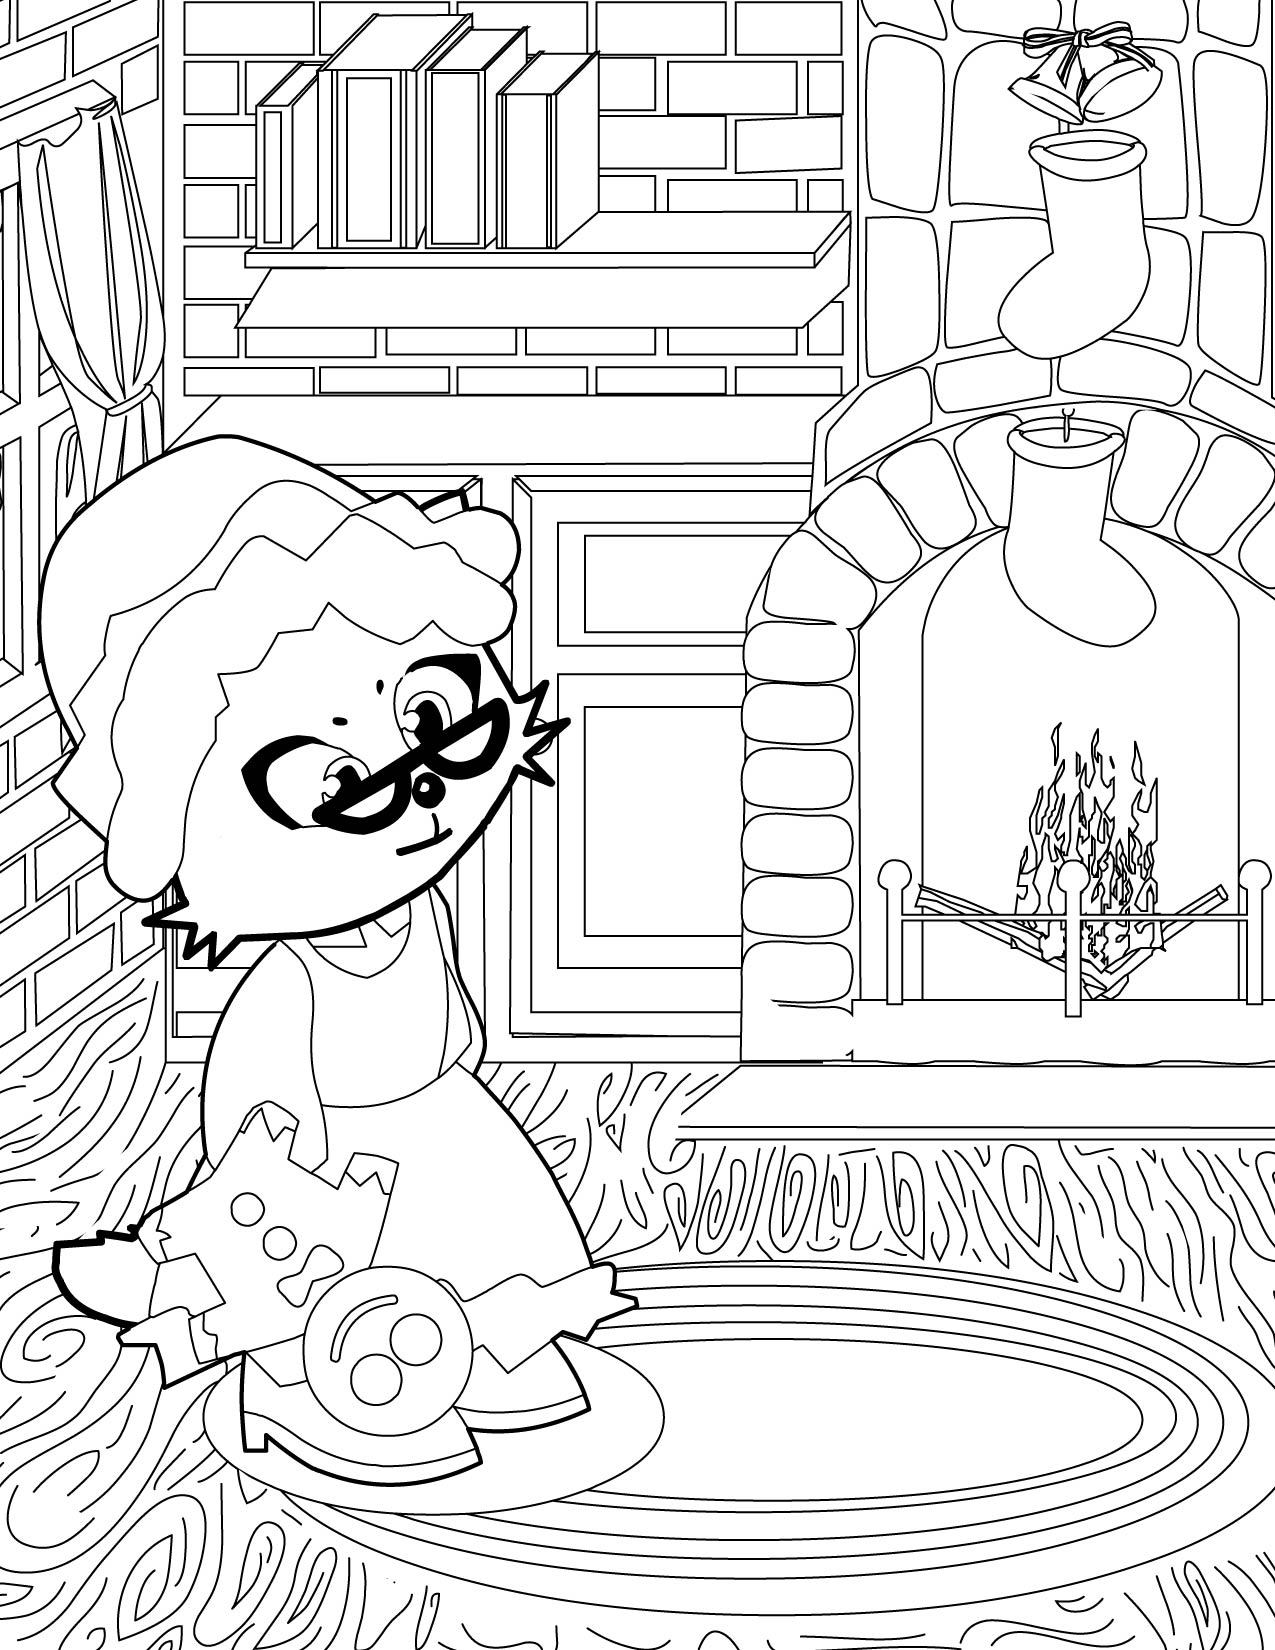 Virtual Coloring Pages For Adults : Handipoints coloring pages primarygames